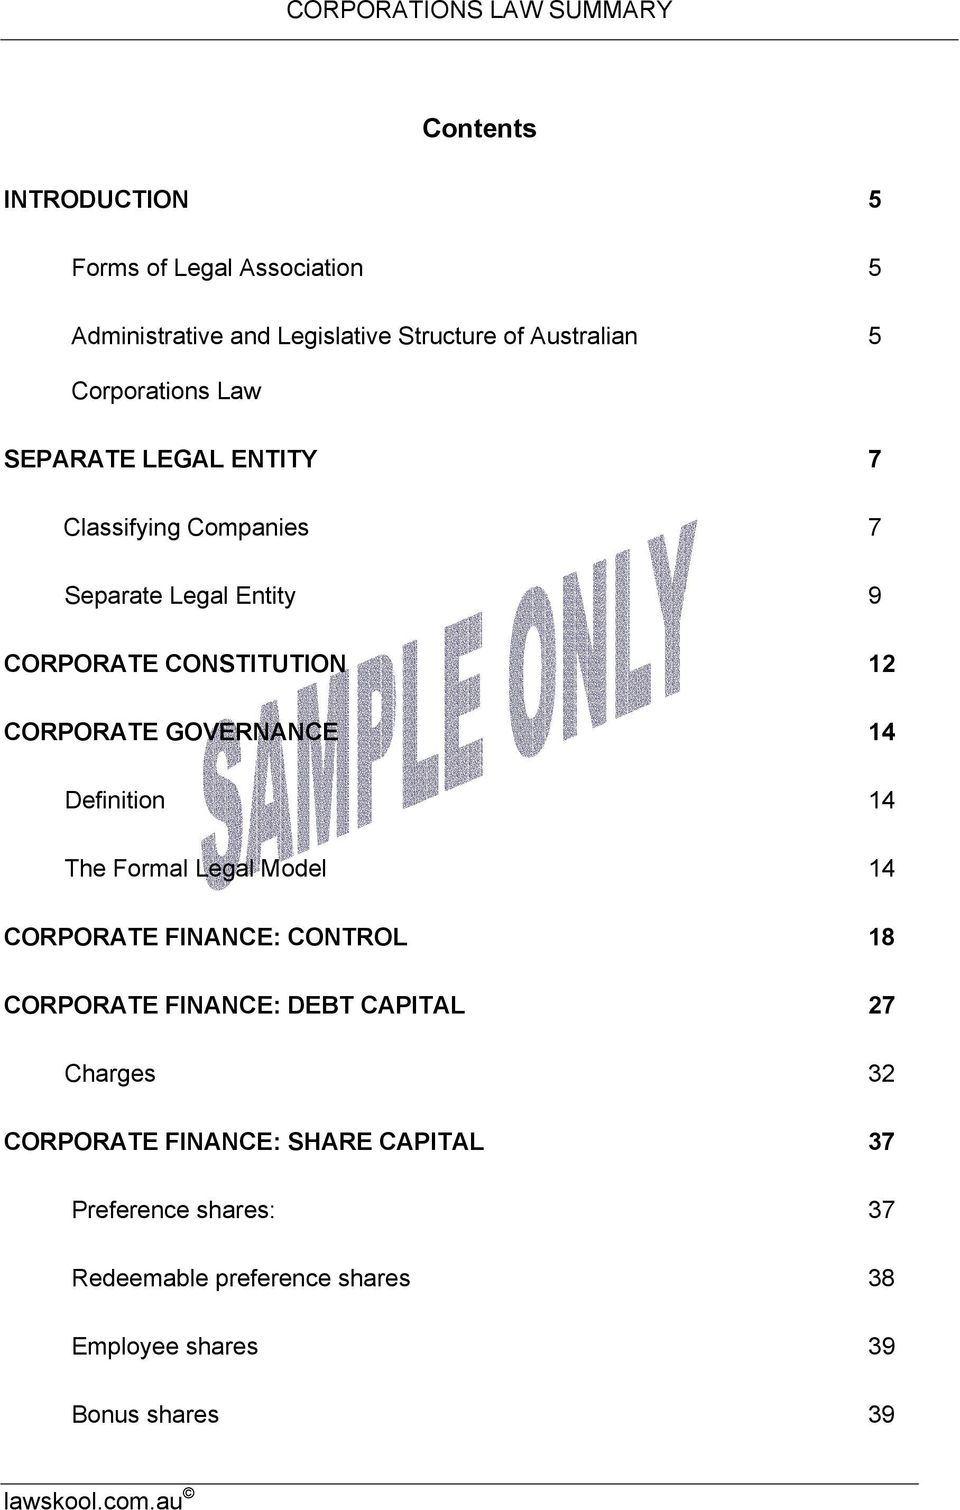 14 Definitin 14 The Frmal Legal Mdel 14 CORPORATE FINANCE: CONTROL 18 CORPORATE FINANCE: DEBT CAPITAL 27 Charges 32